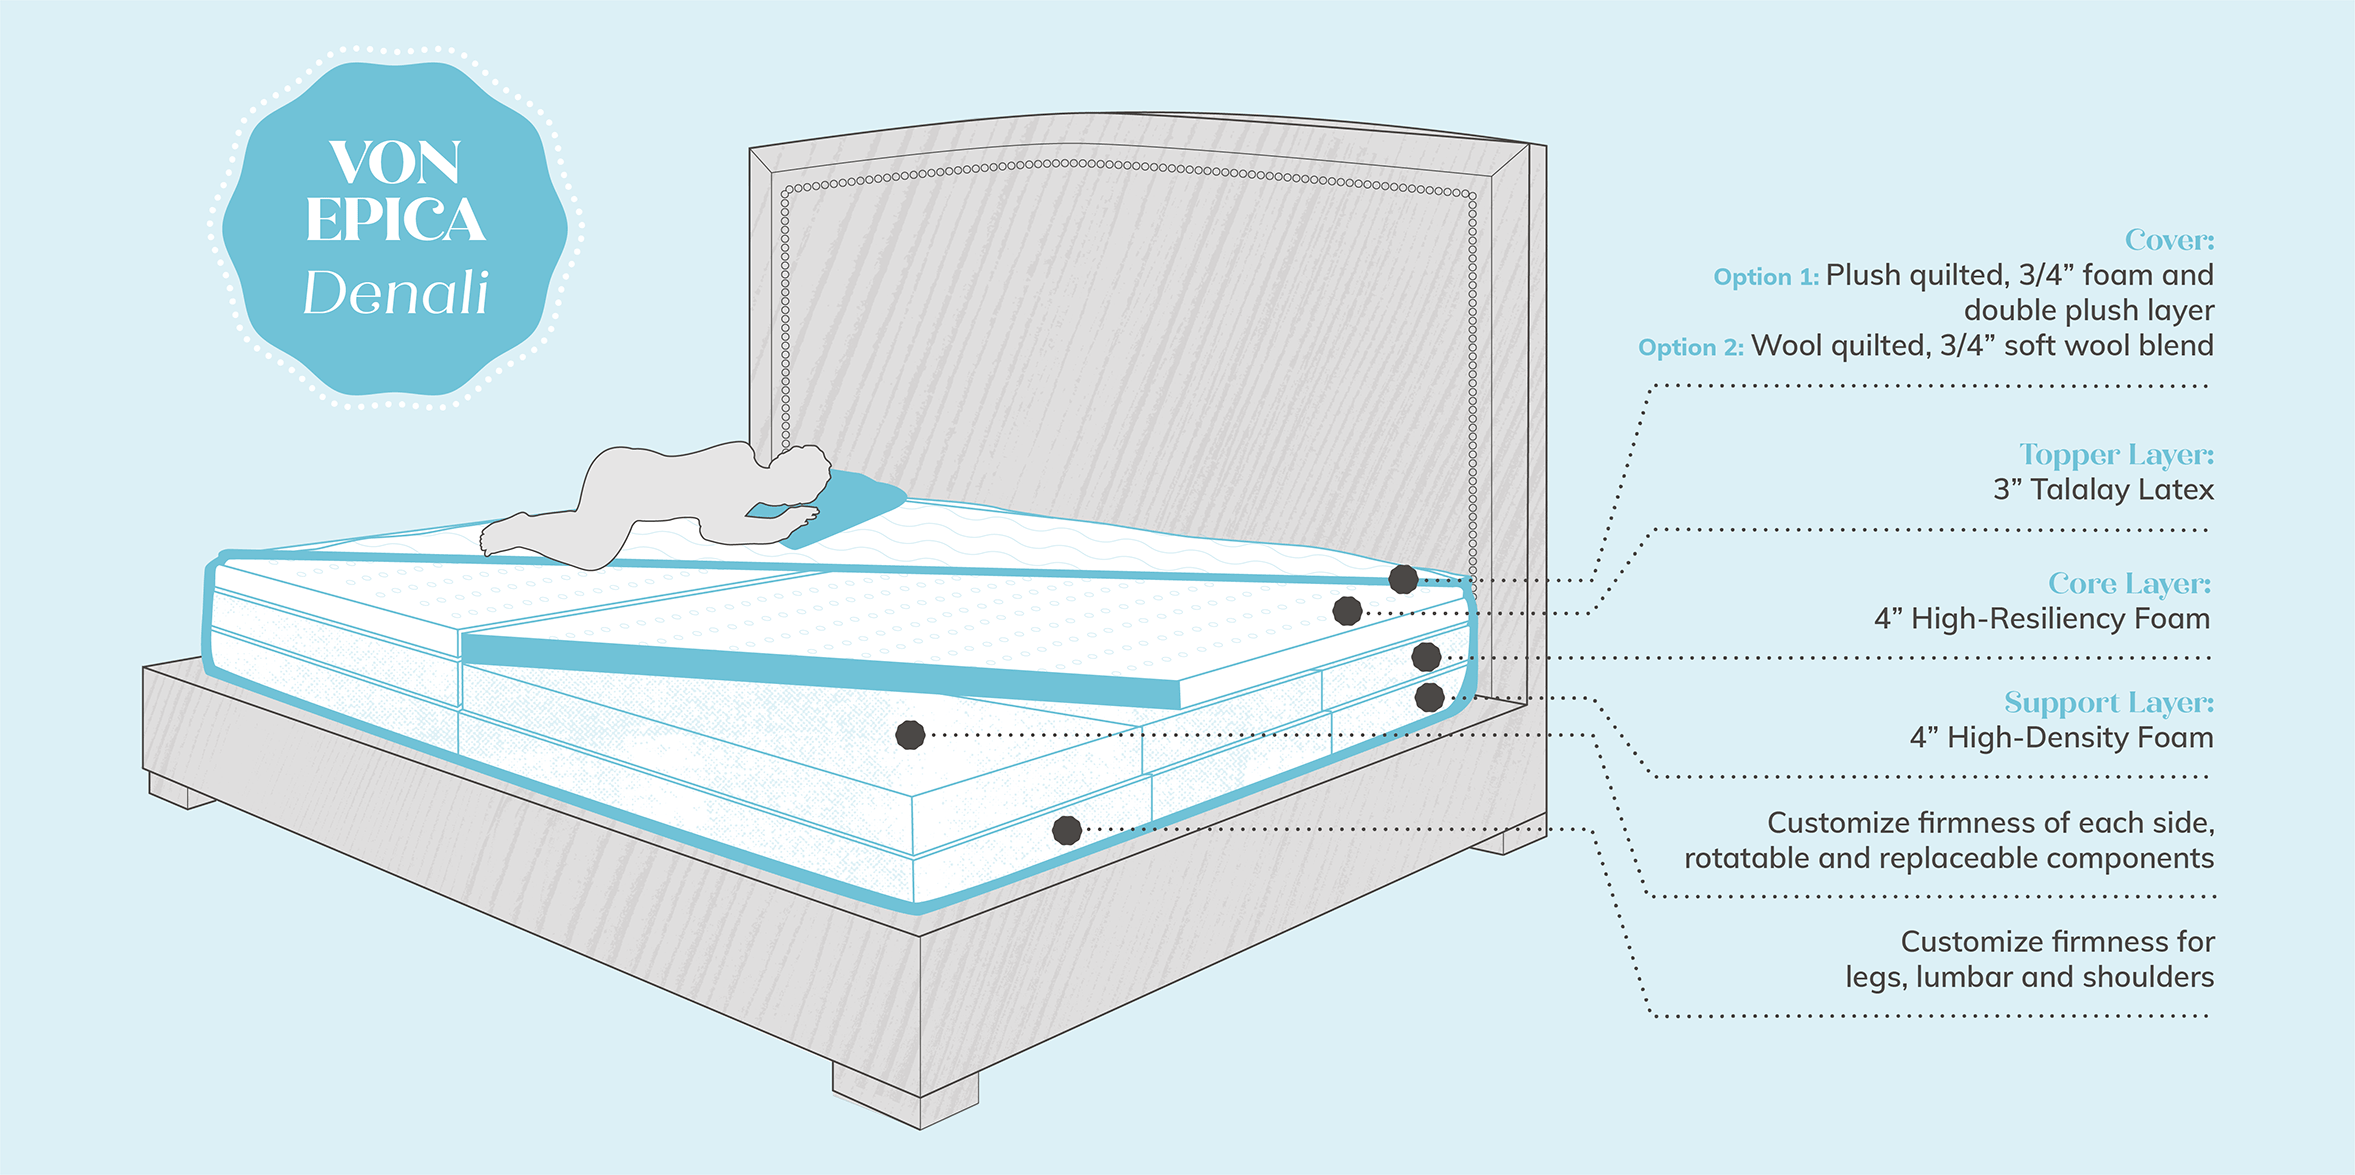 Oversized Mattress Diagram - Von Epica Denali